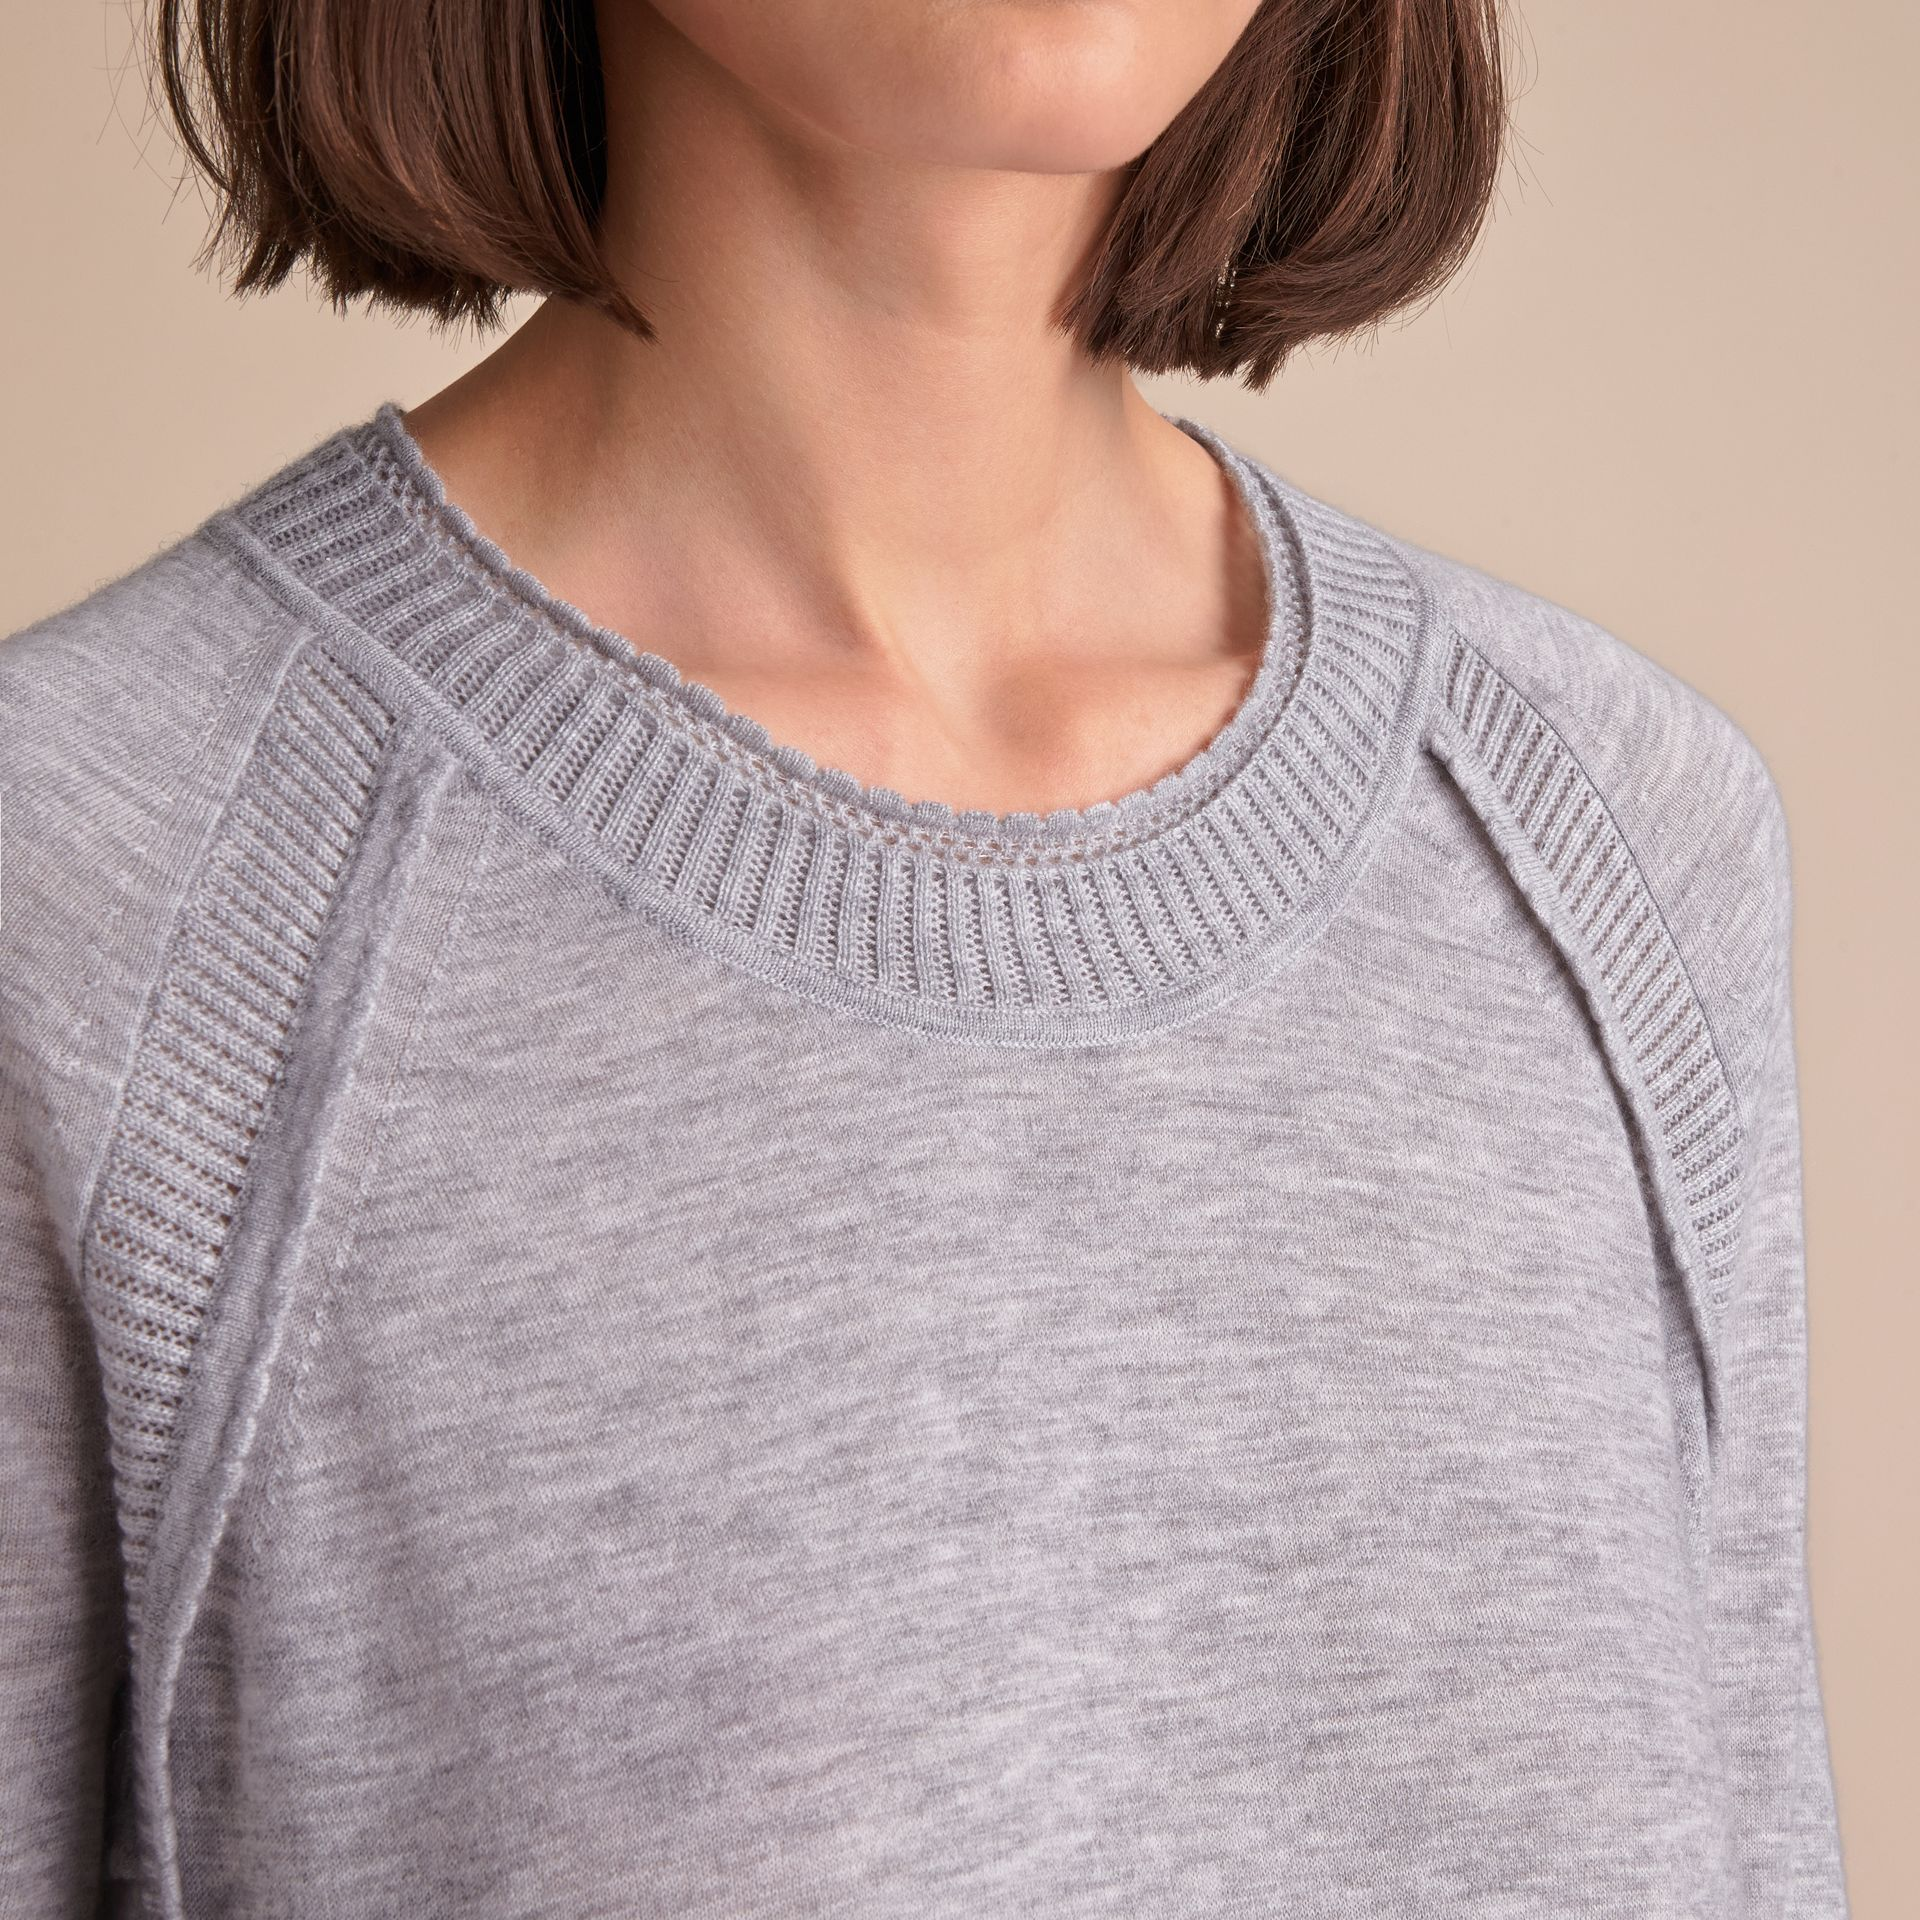 Open-knit Detail Cashmere Crew Neck Sweater in Light Grey Melange - Women | Burberry - gallery image 5